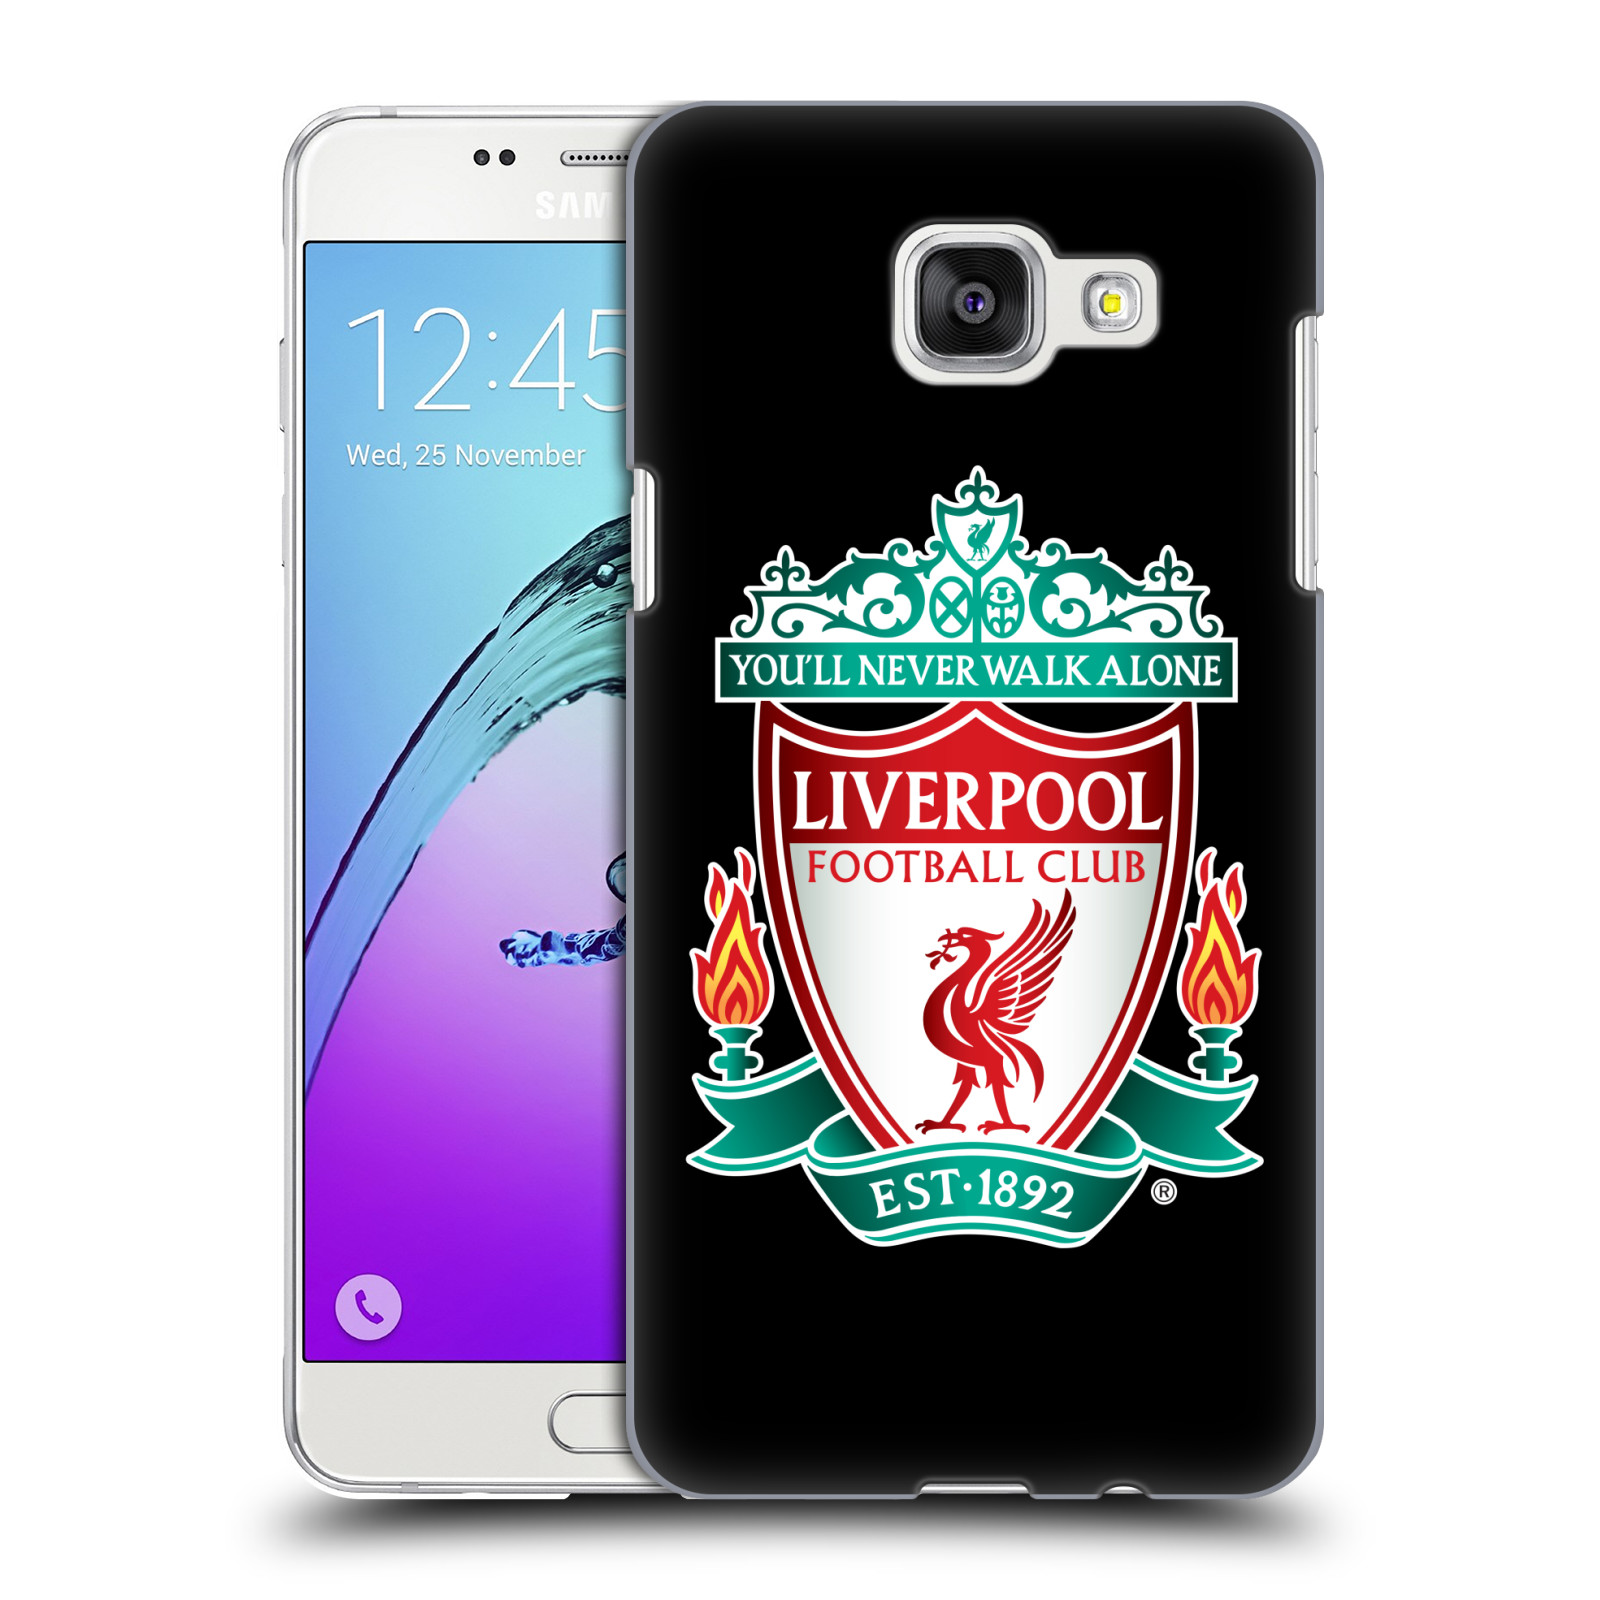 Plastové pouzdro na mobil Samsung Galaxy A5 (2016) HEAD CASE ZNAK LIVERPOOL FC OFFICIAL BLACK